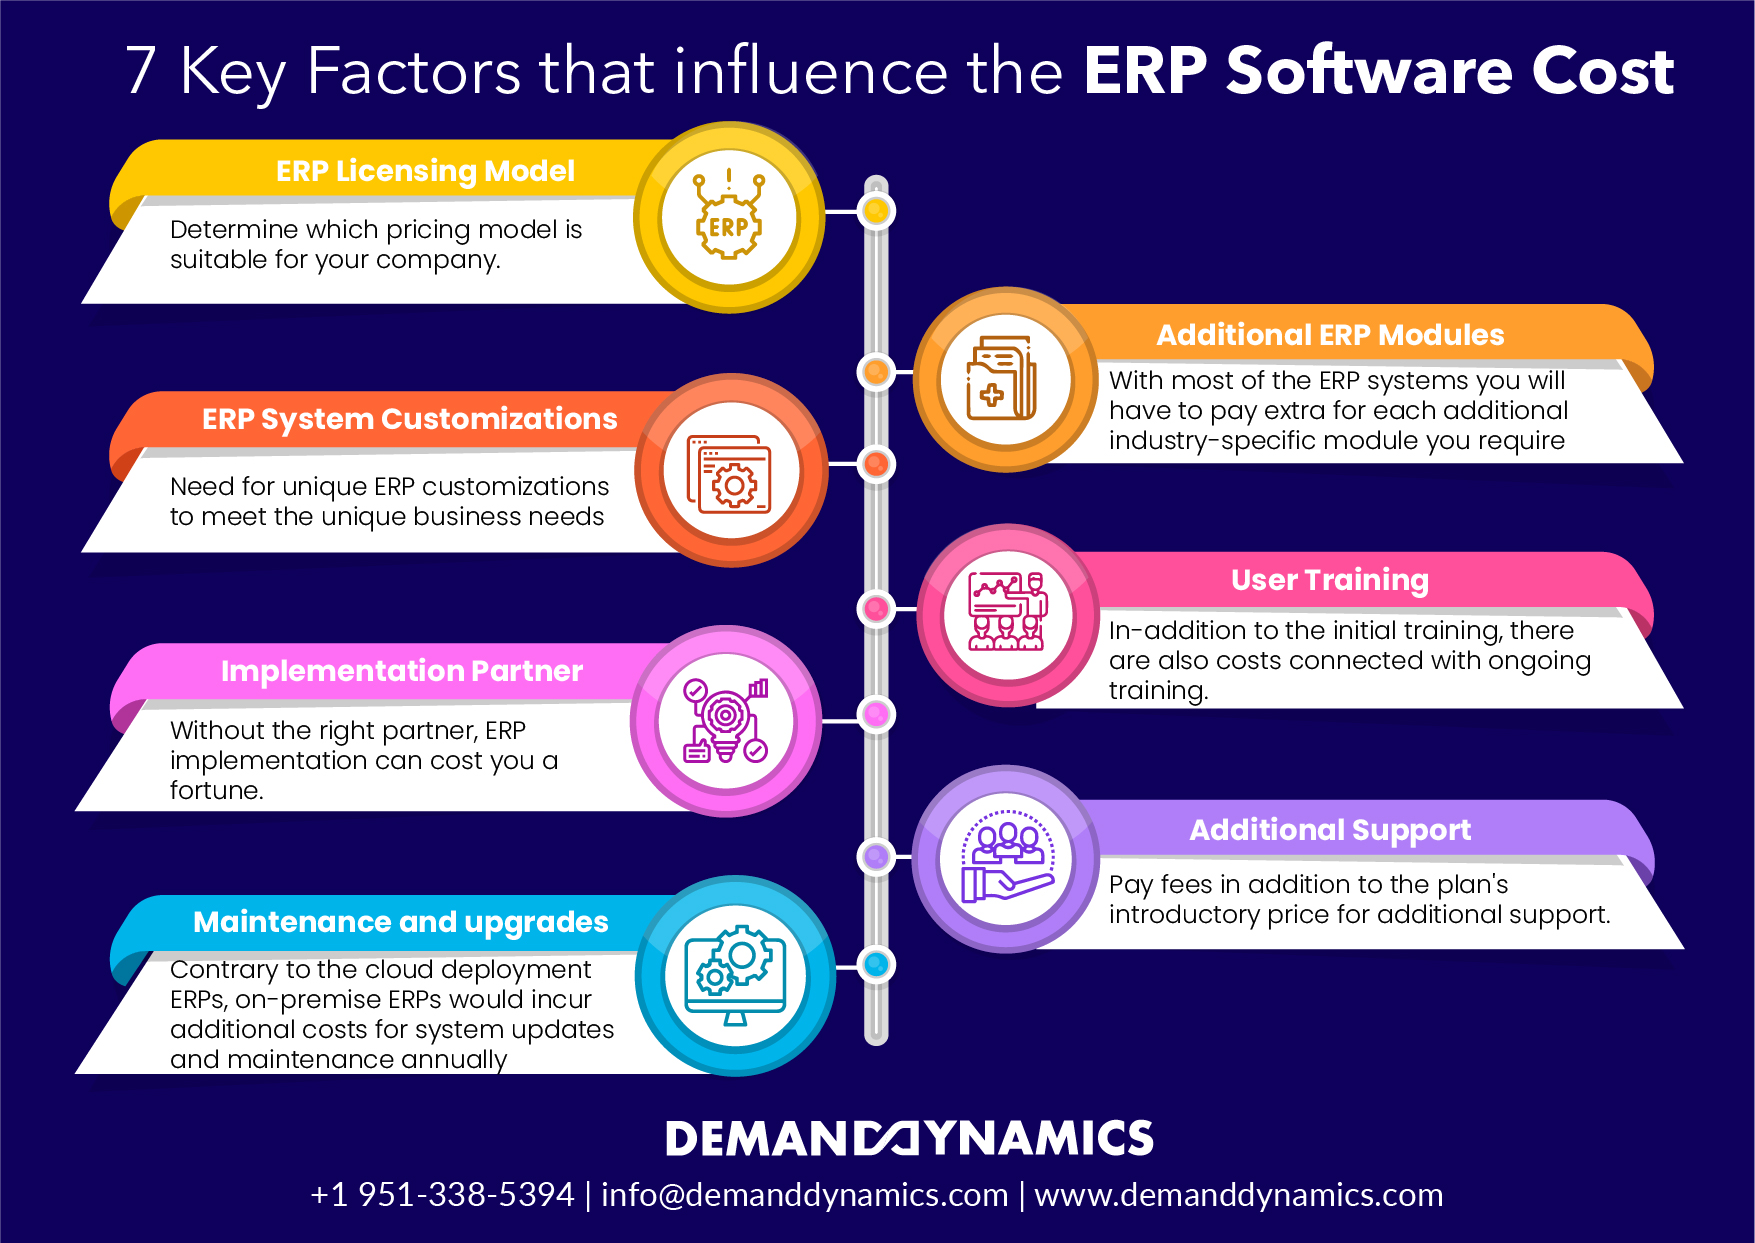 7 Key Factors that influence the ERP Software Cost